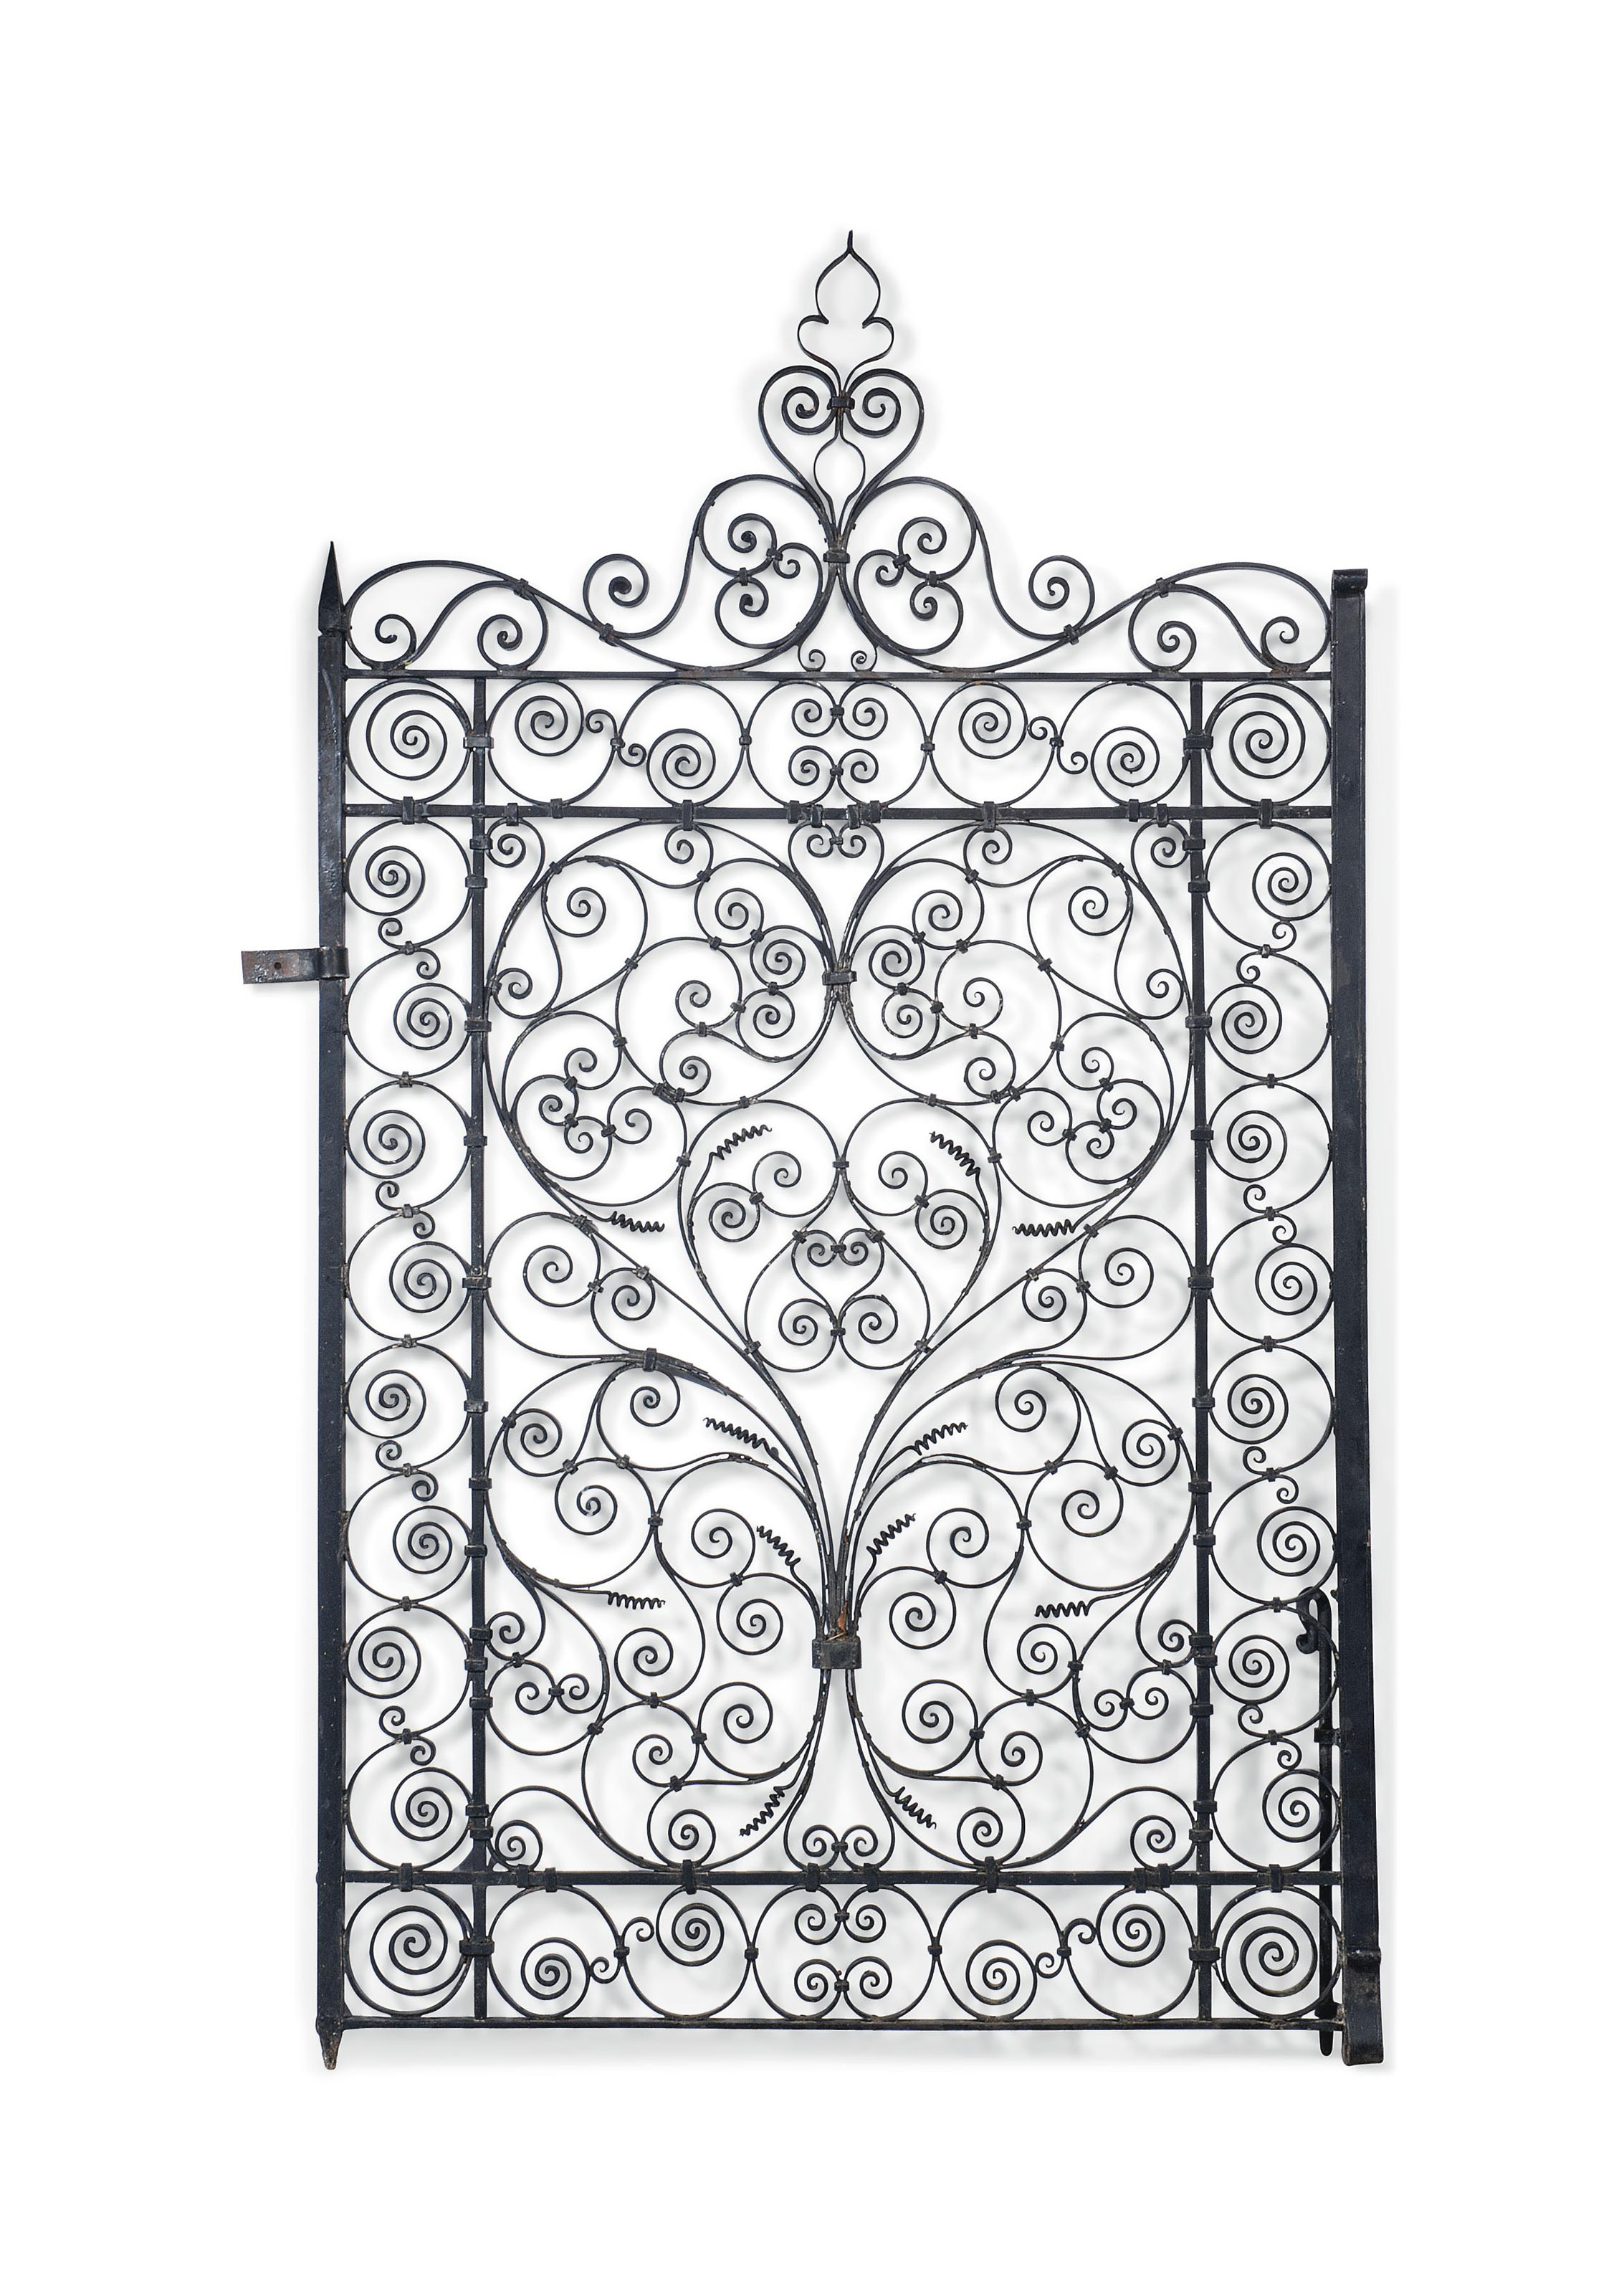 A LARGE BLACK-PAINTED WROUGHT IRON GATE